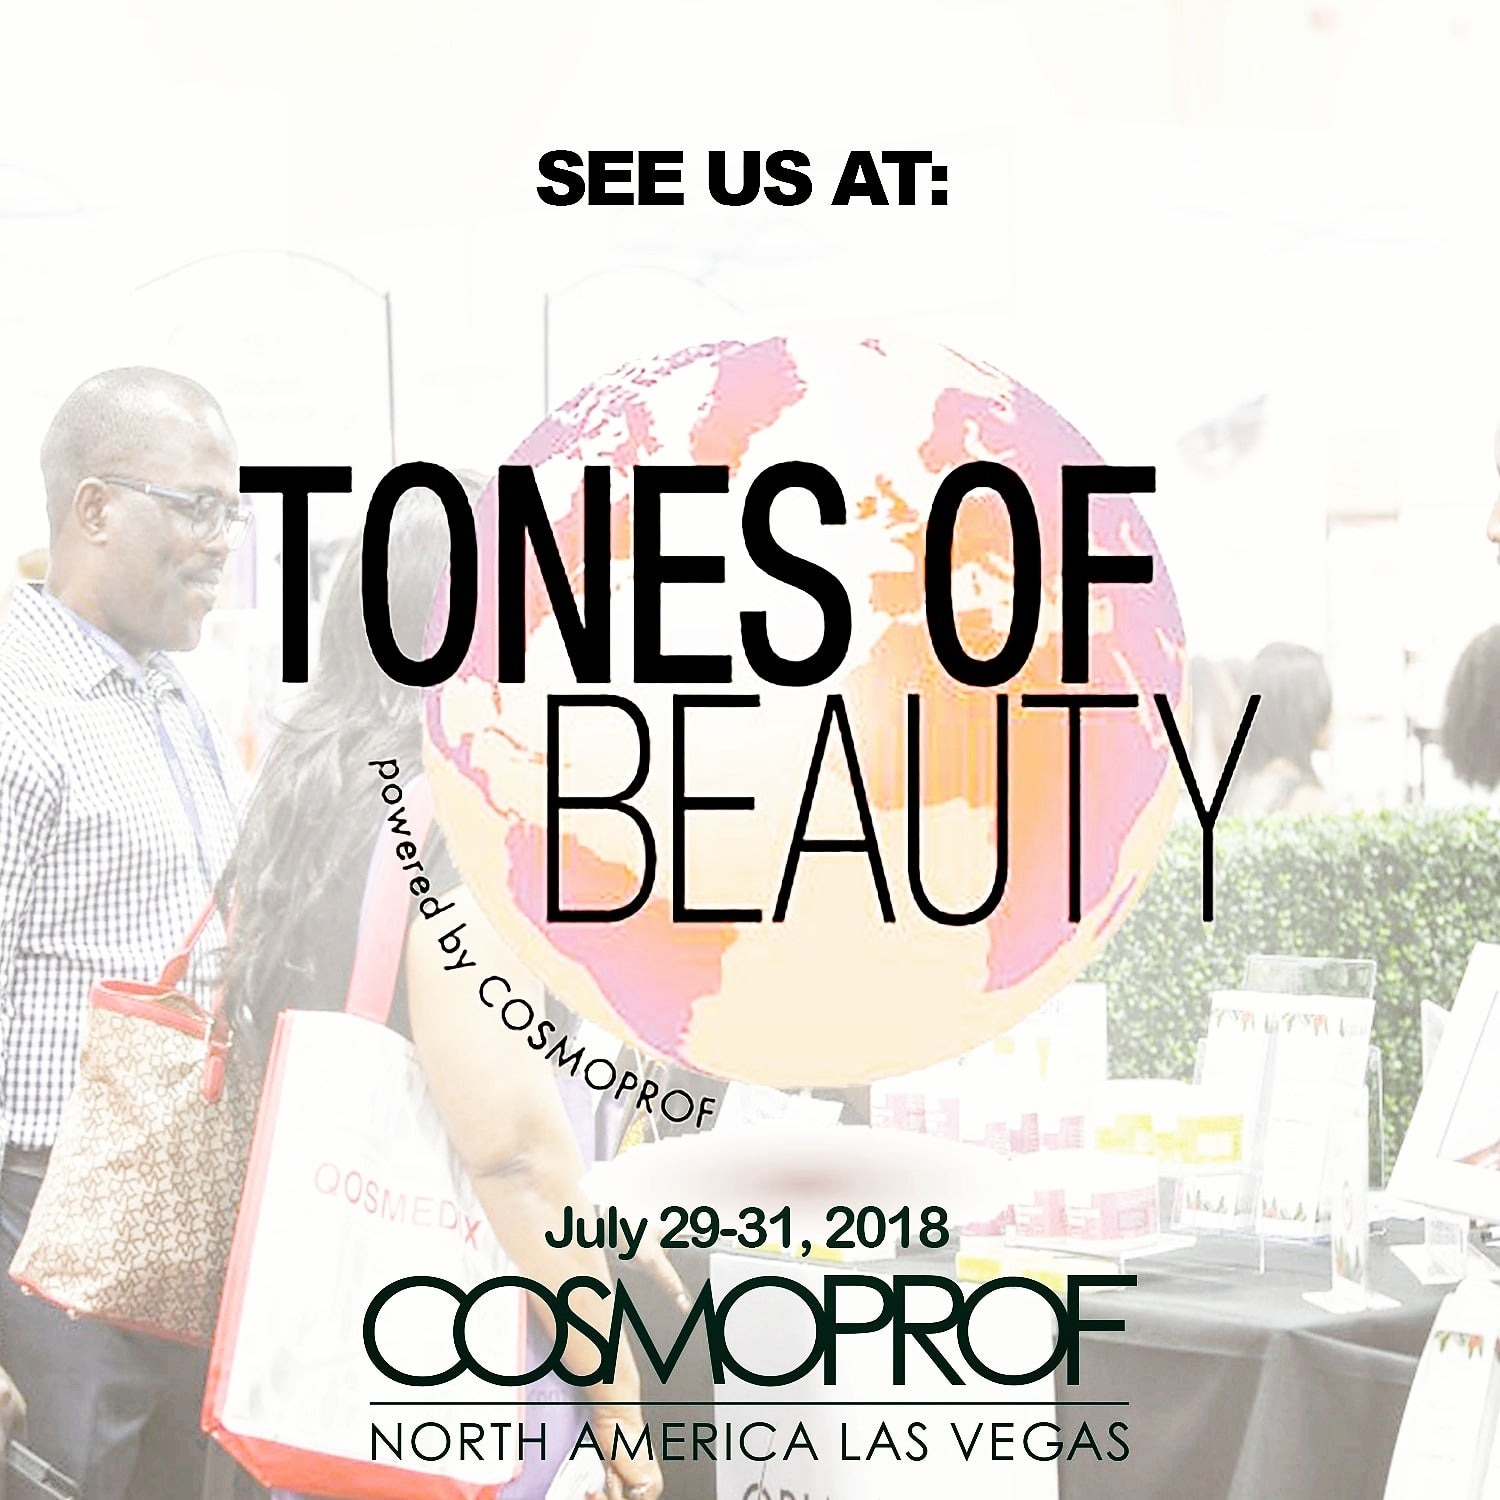 Cosmoprof/Tones Of Beauty July 29-31, 2018